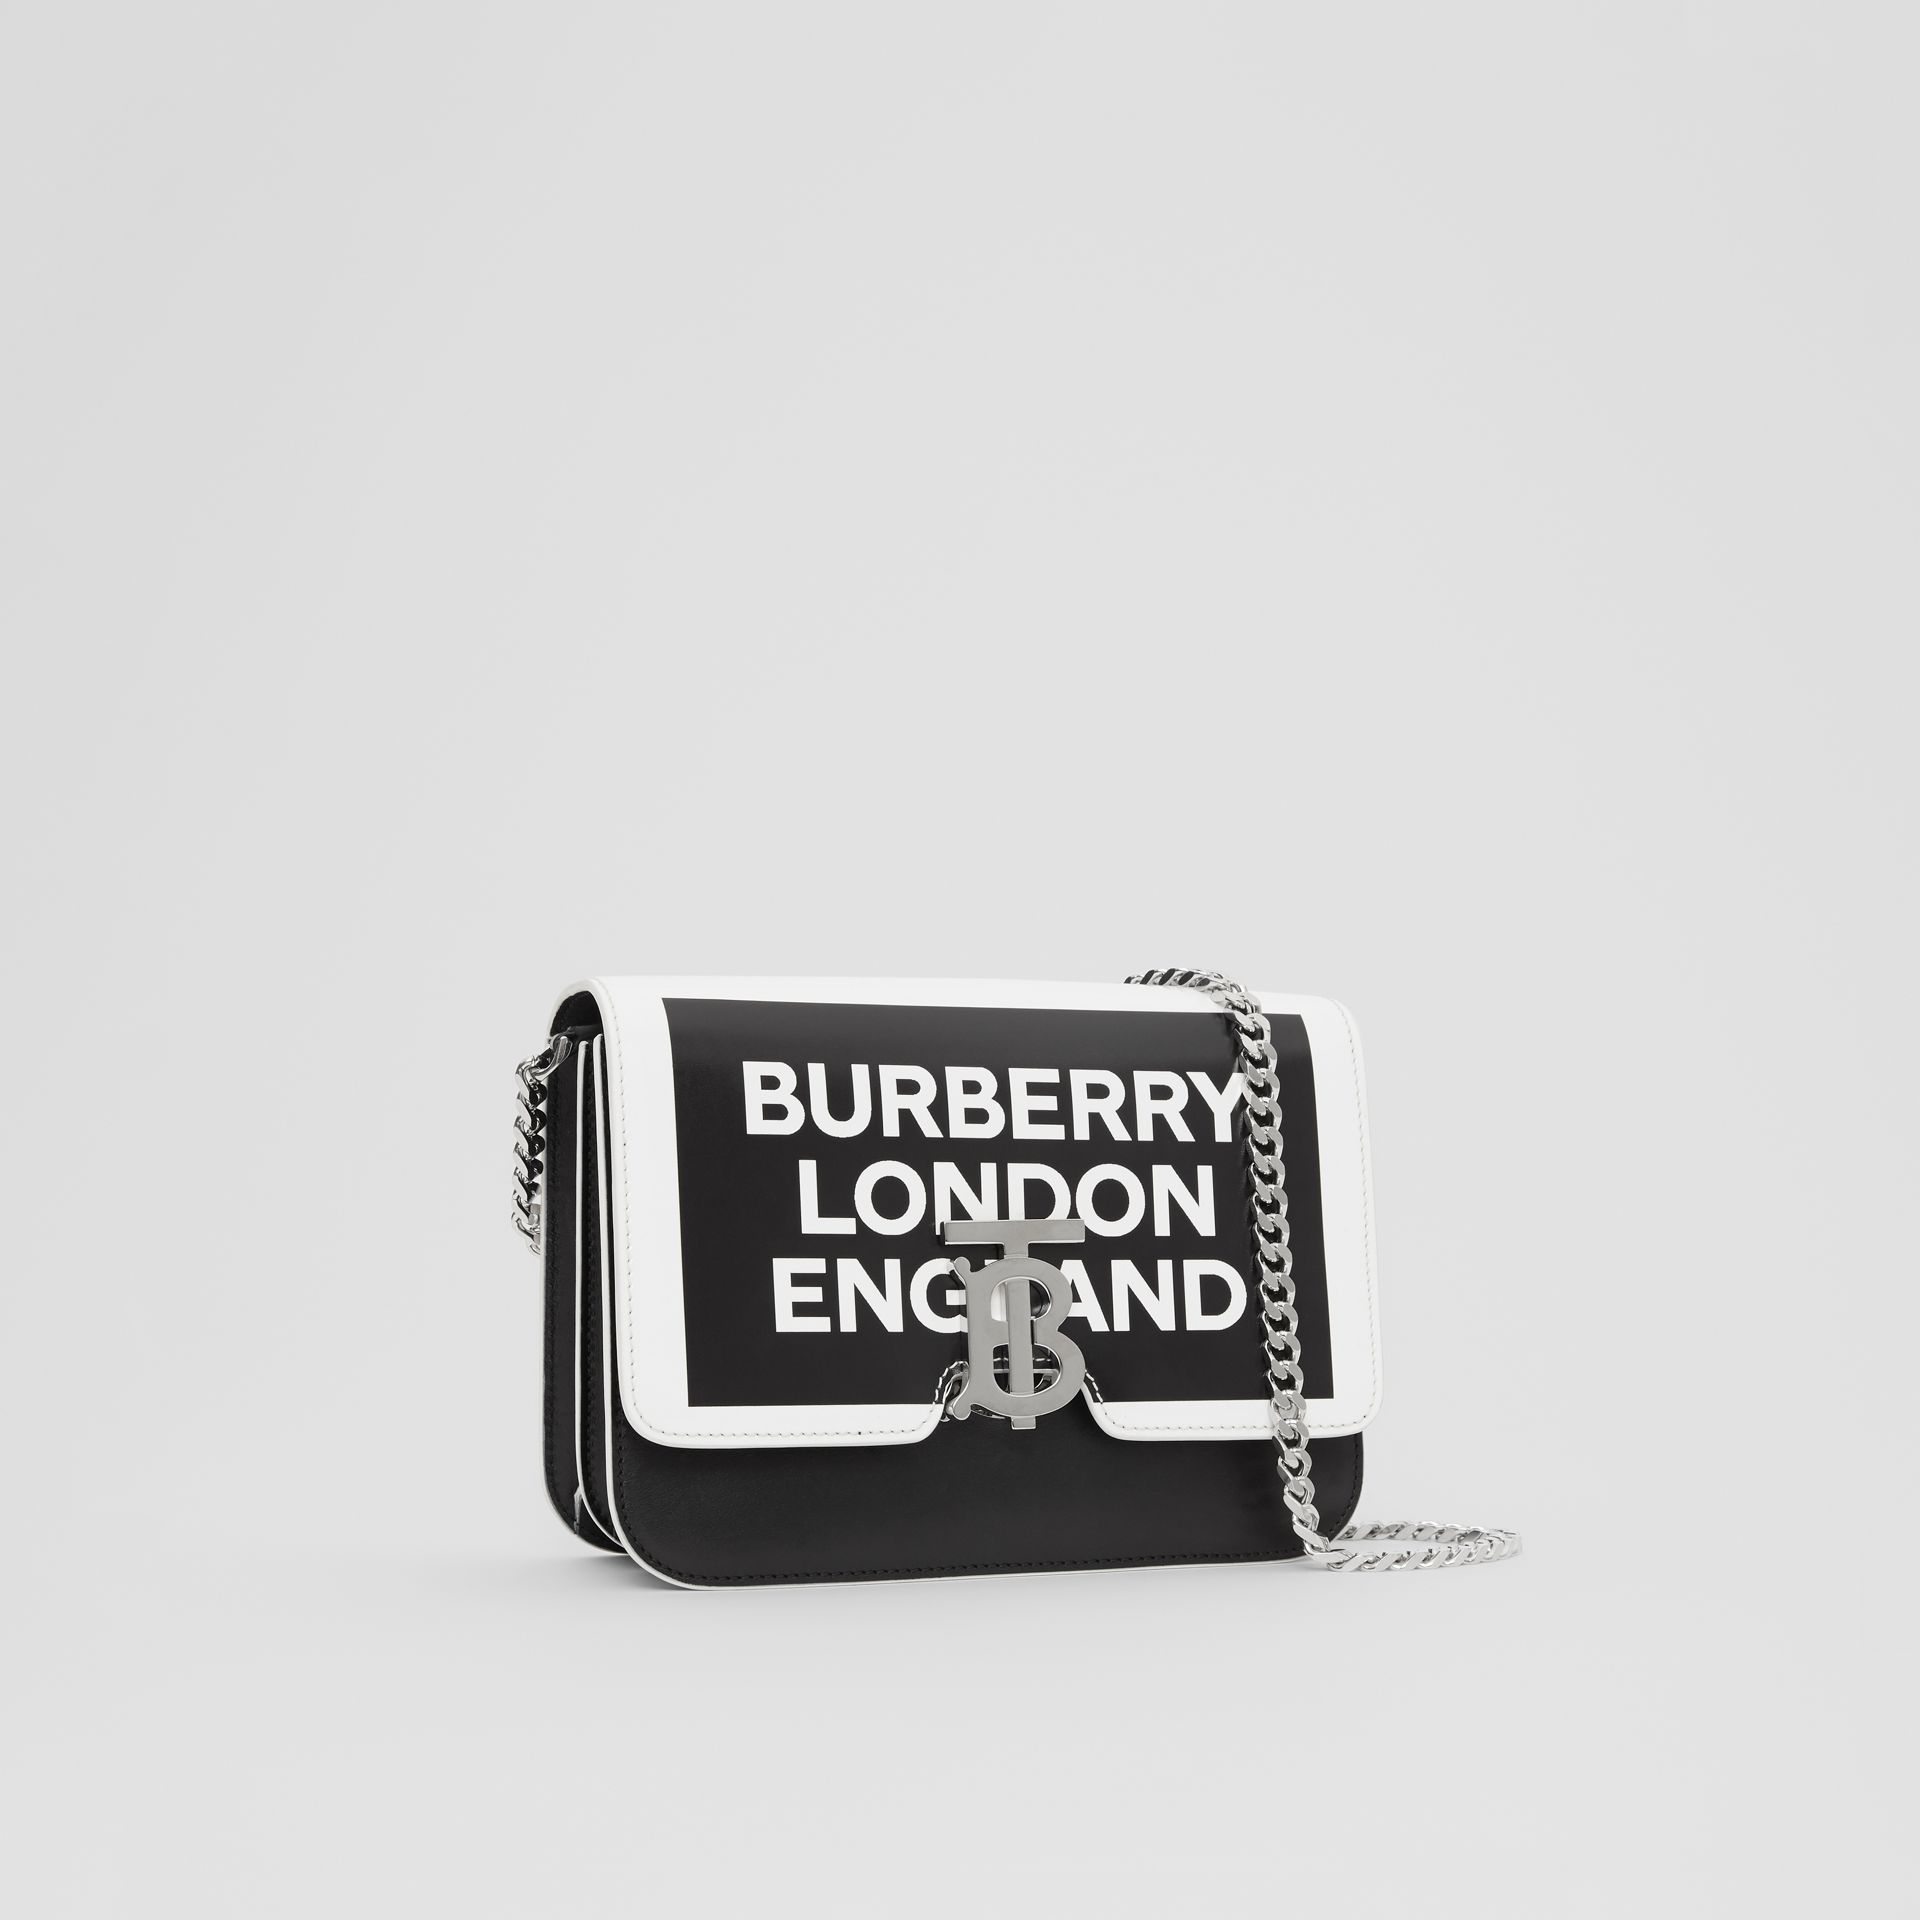 Small Logo Print Leather TB Bag in Black/white - Women | Burberry - gallery image 6